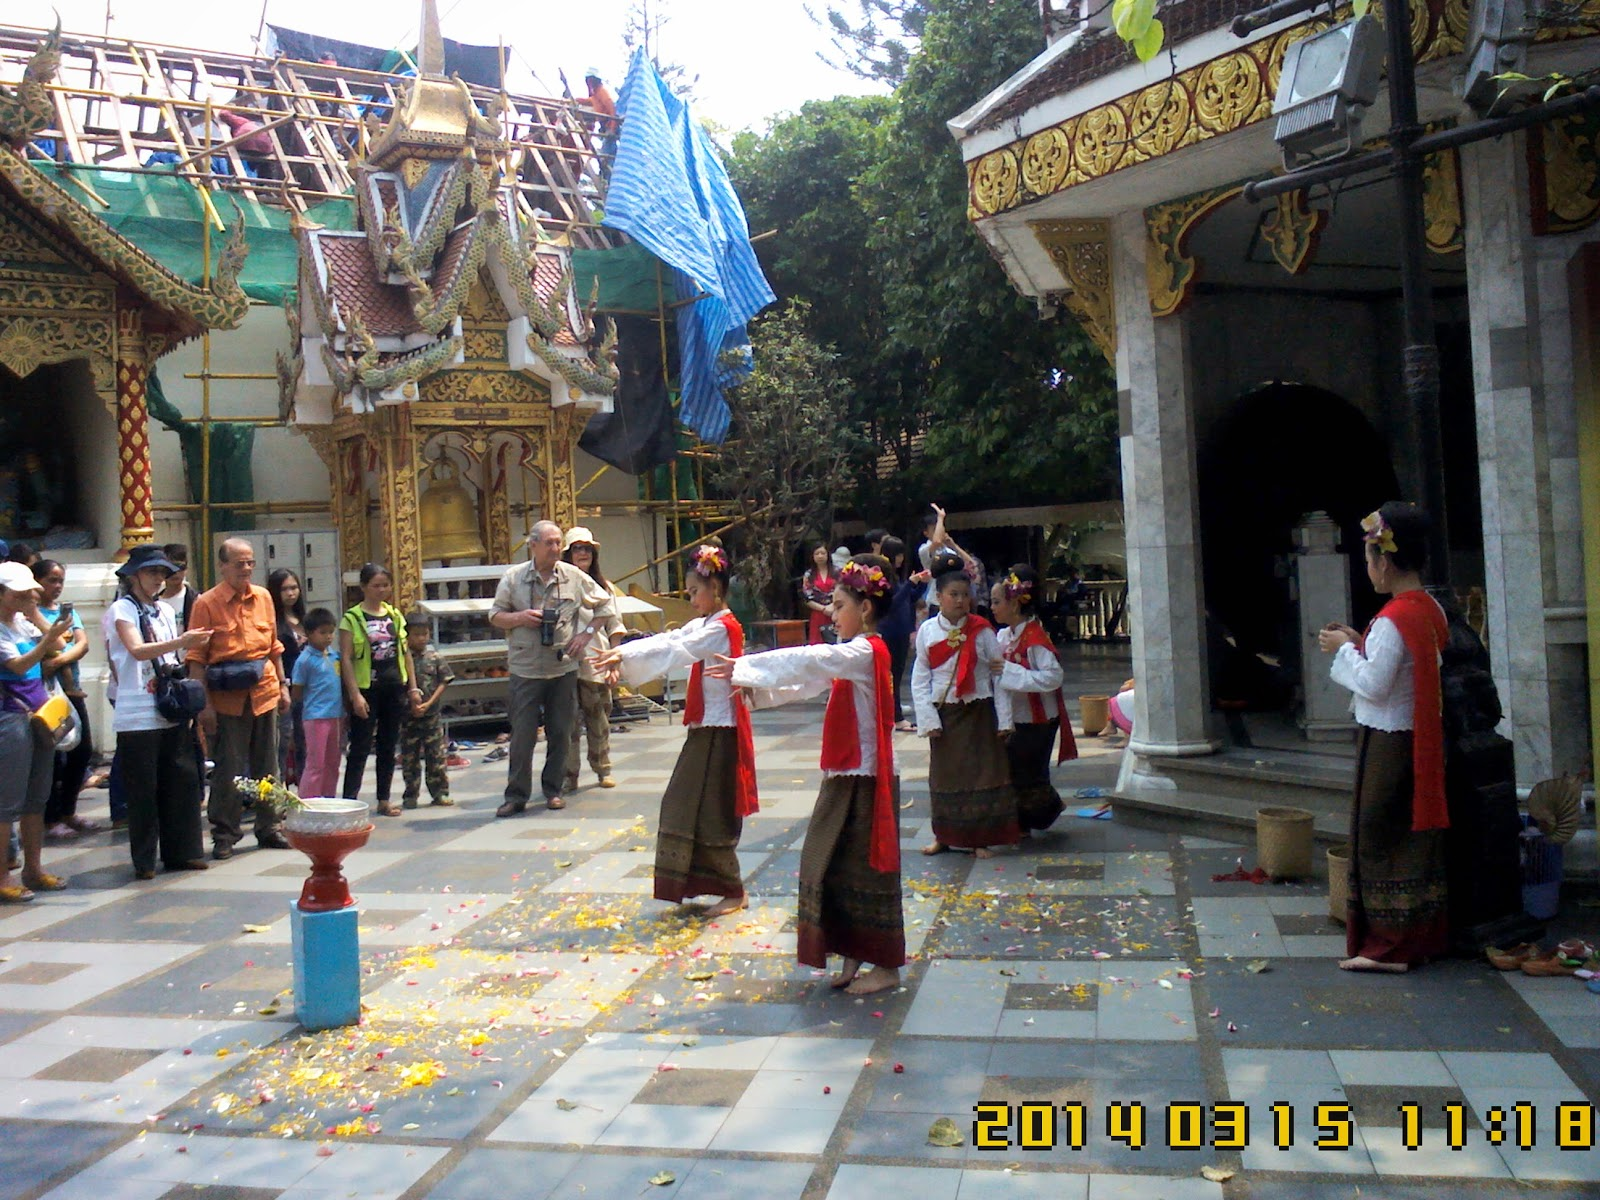 ChiangMai Tour Guide service tour in Chiangmai To May 's Group